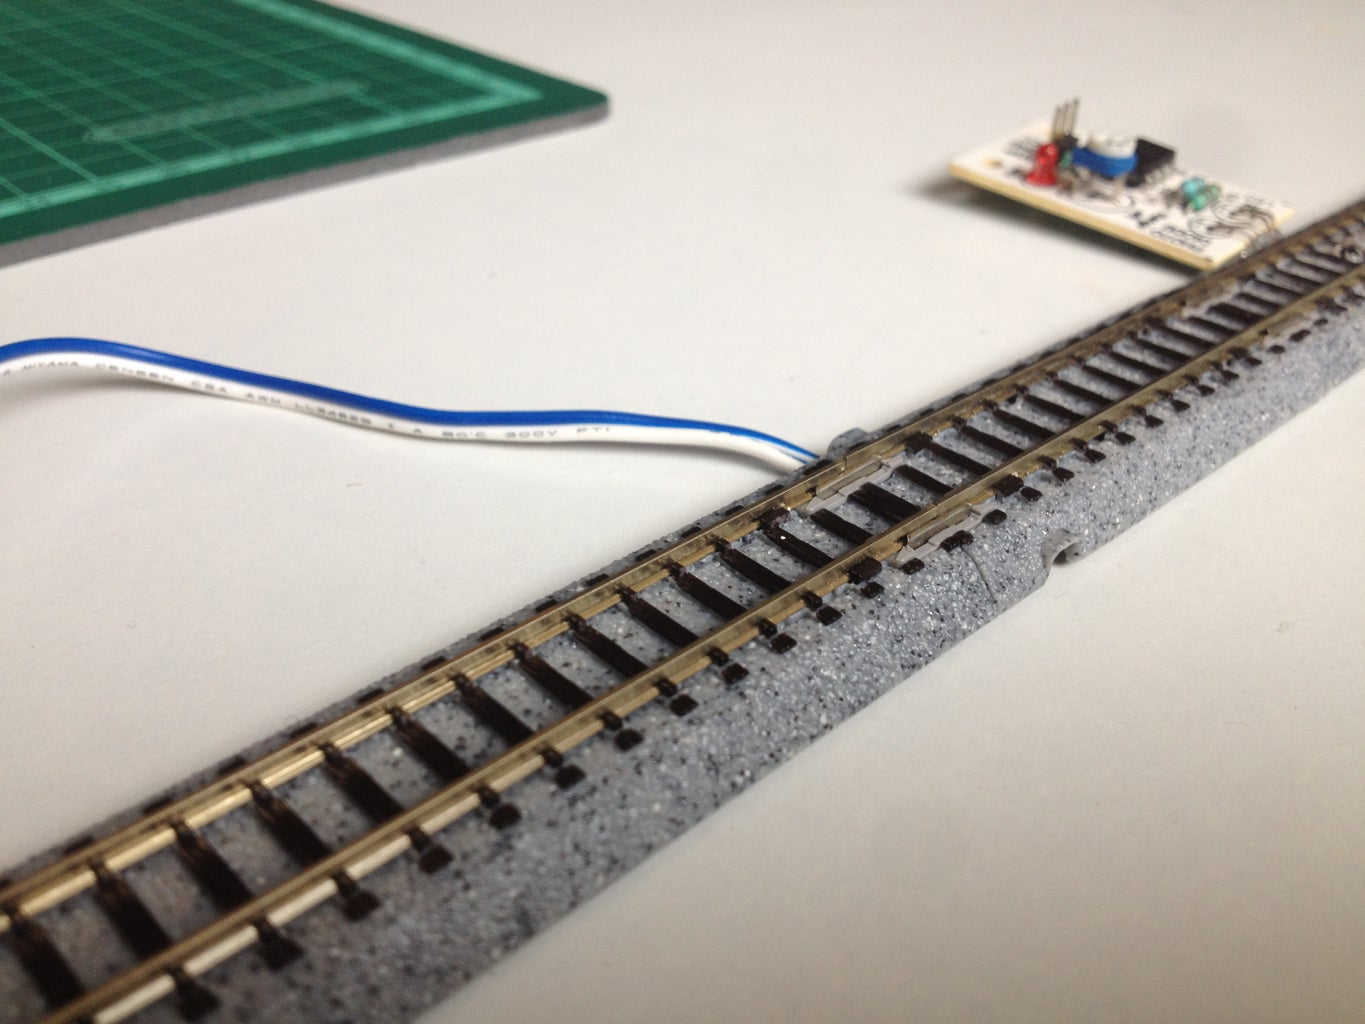 Connect the Track Power to the Motor Shield